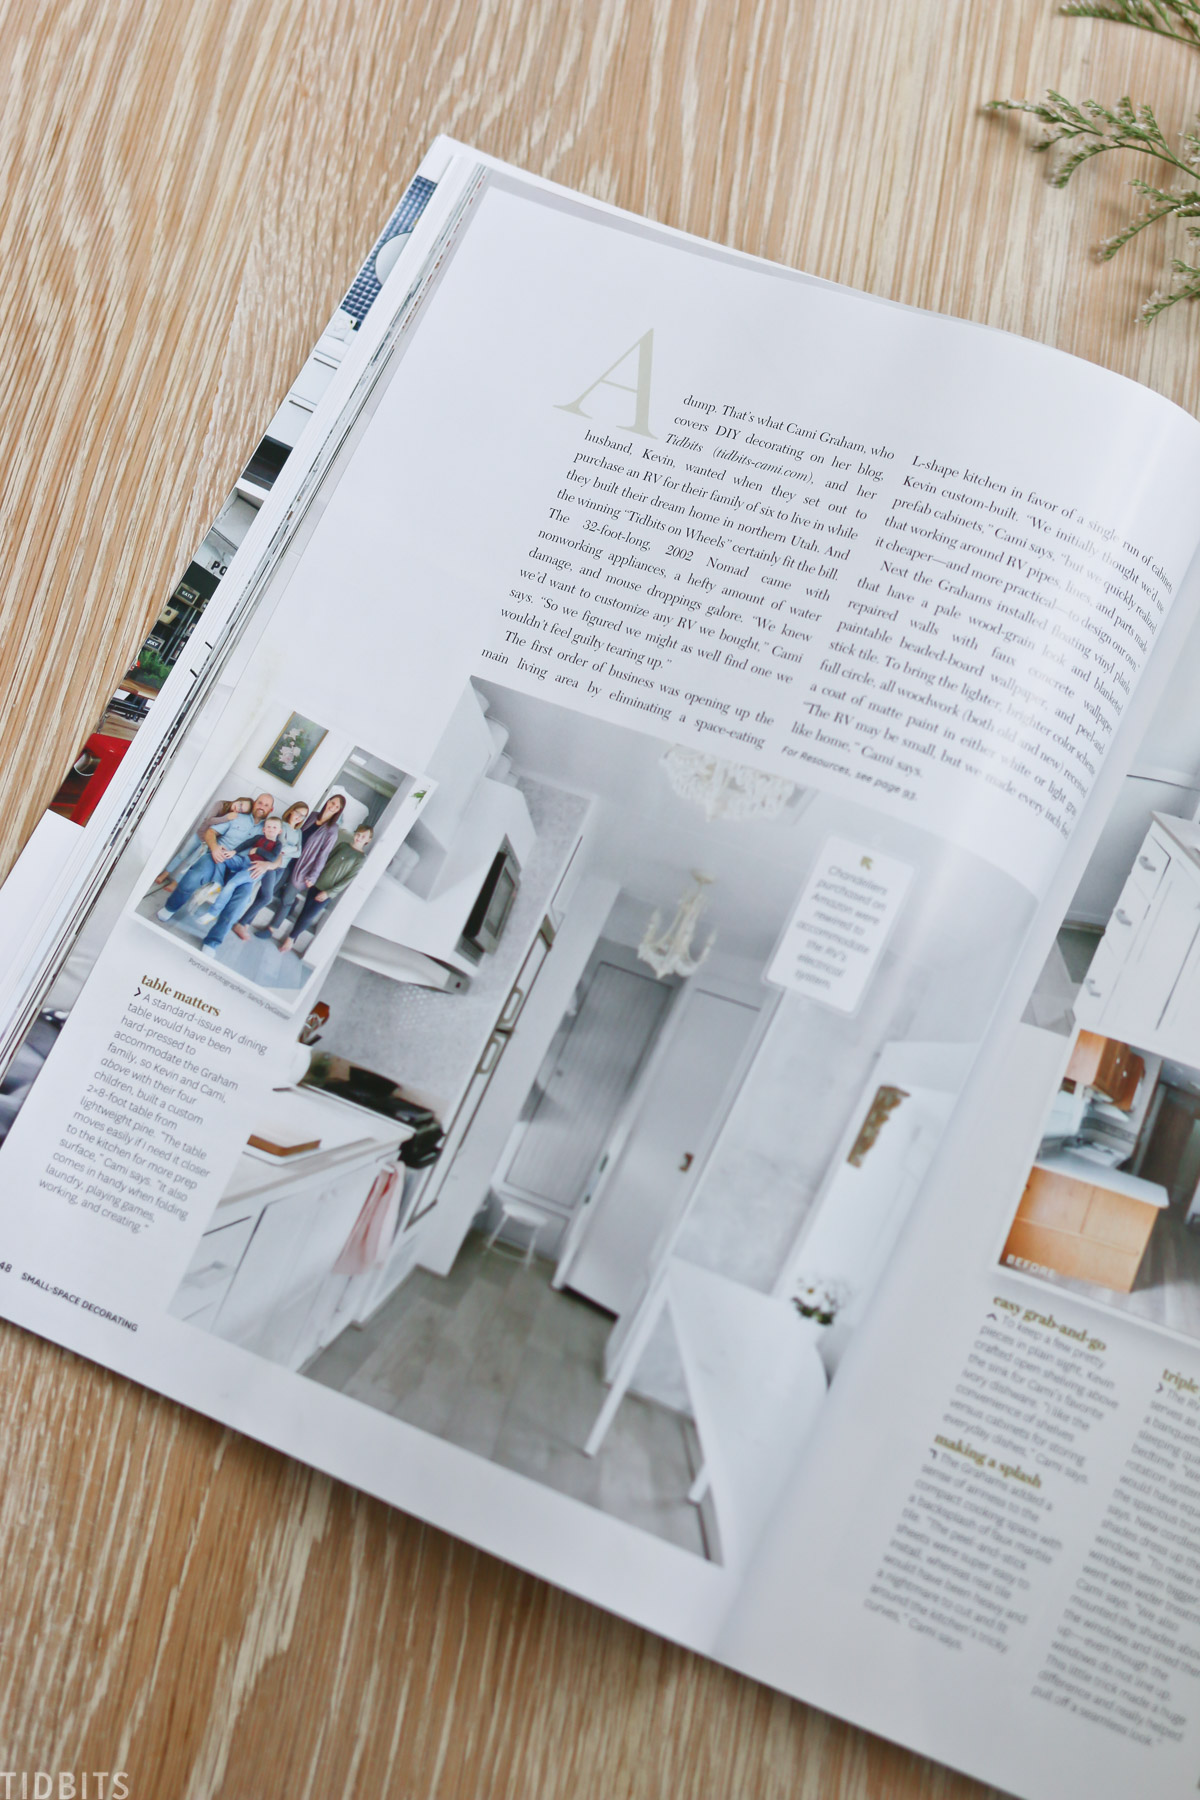 Being featured in Better Homes and Gardens